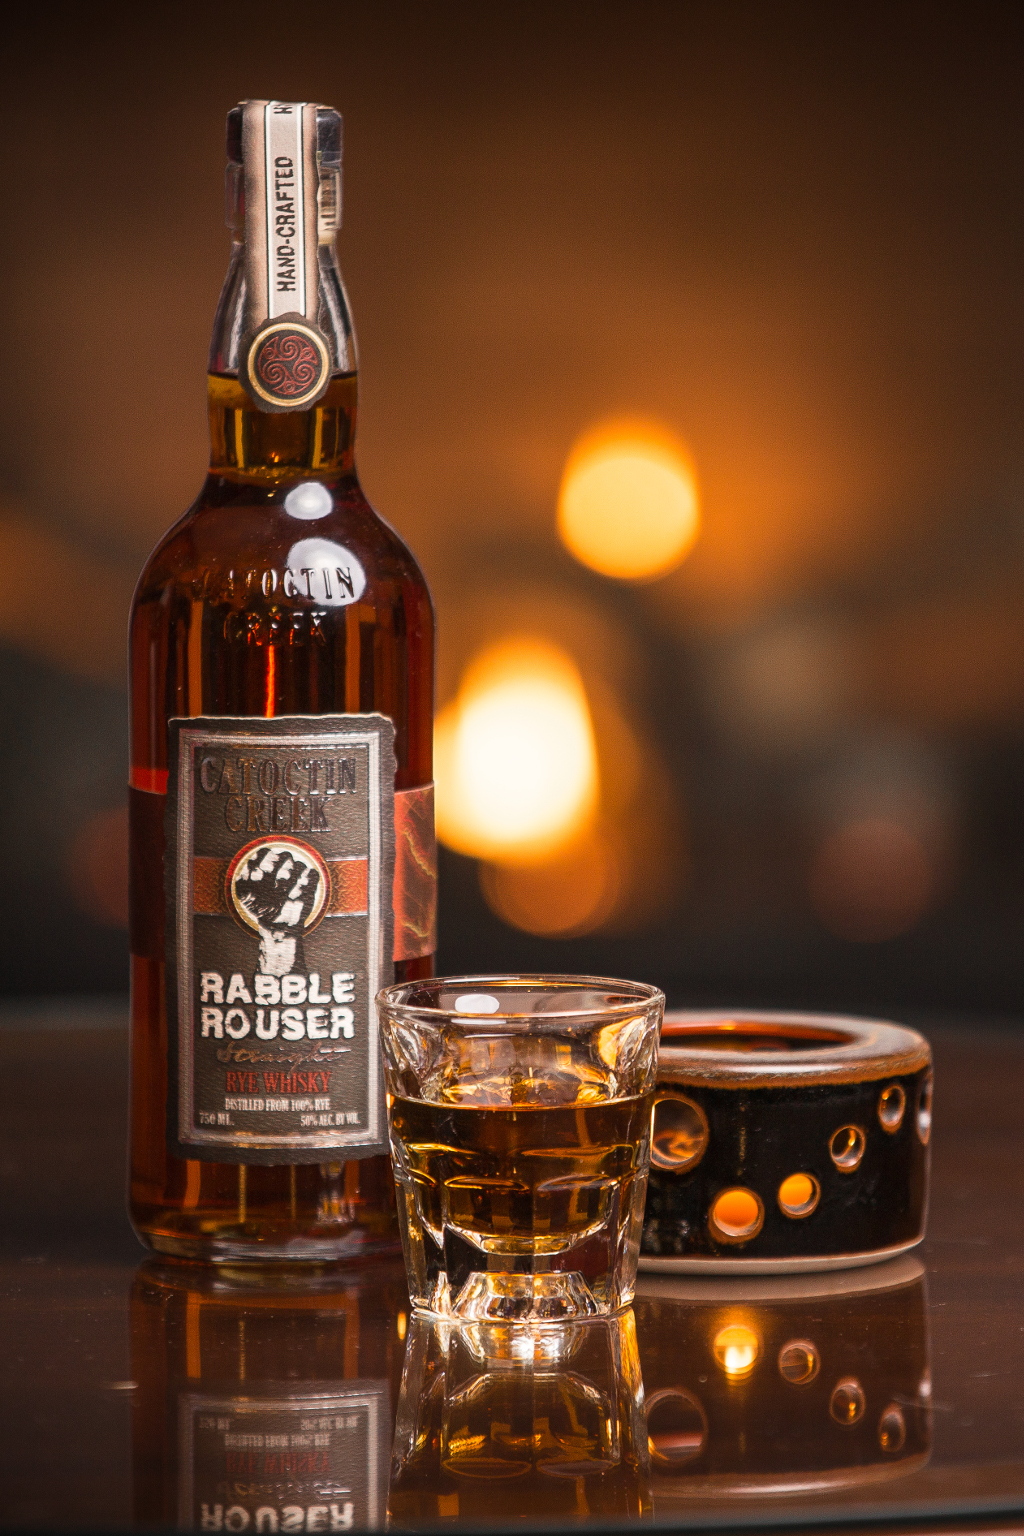 Rabble Rouser Rye Whisky